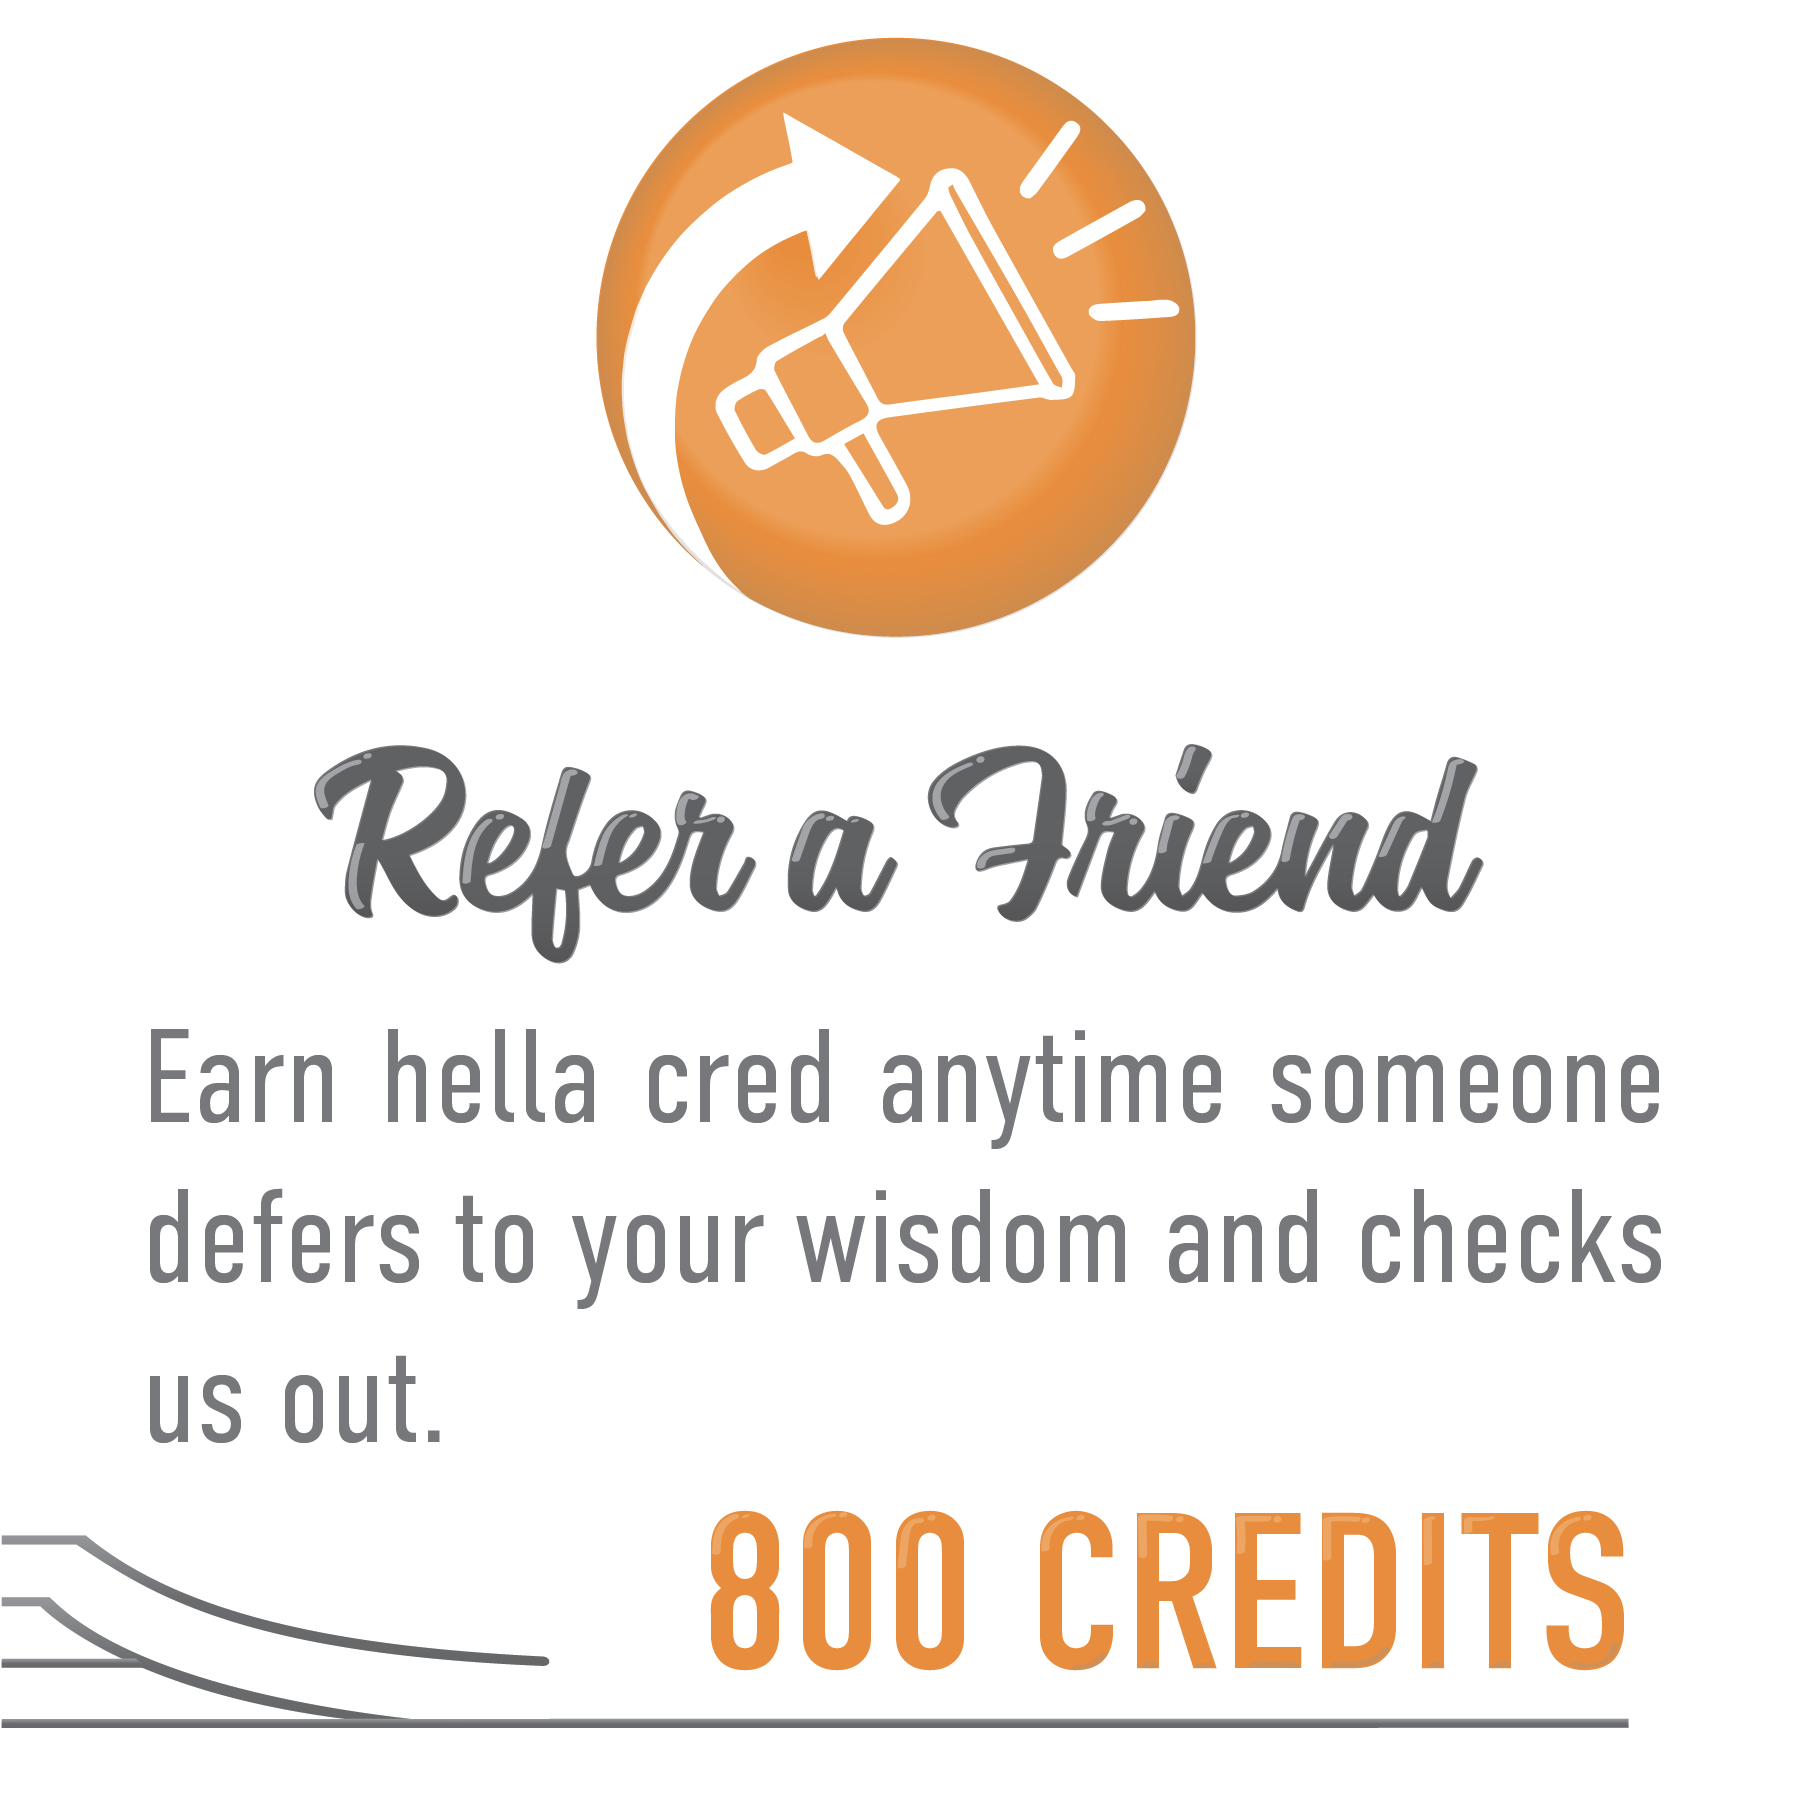 explainer-earn-credits-02.png